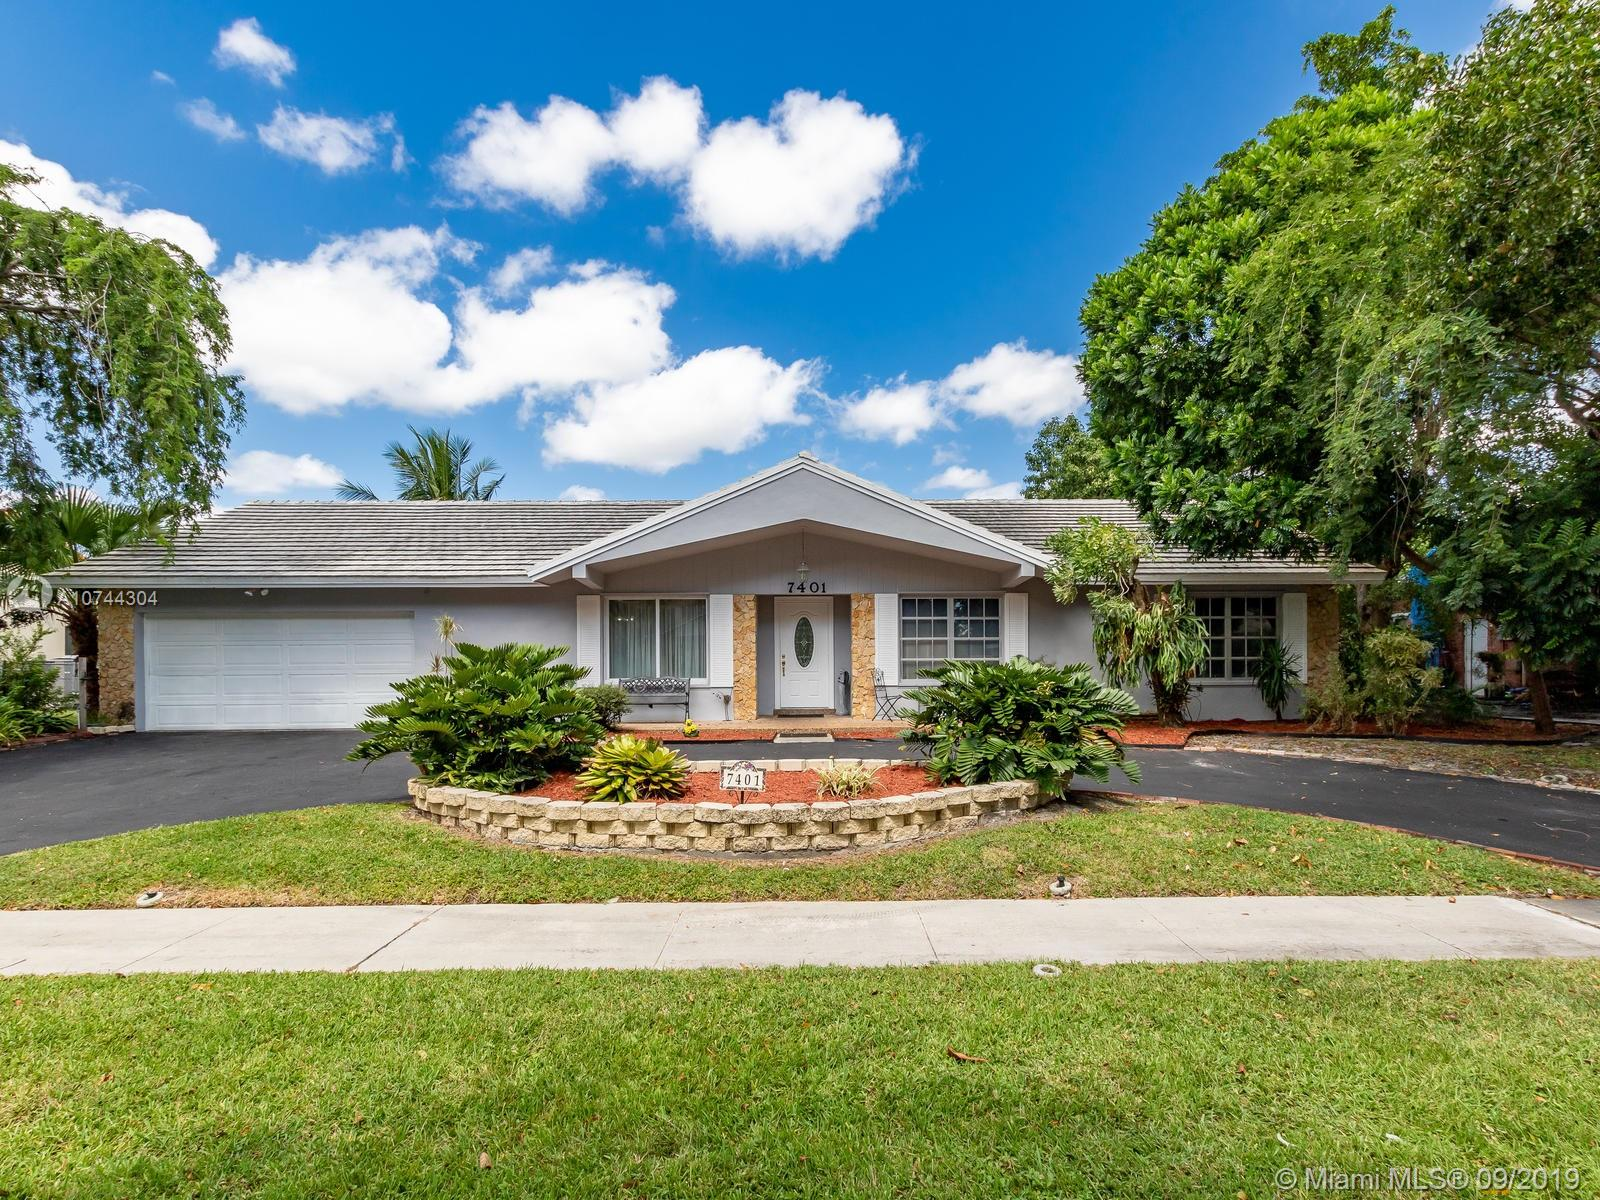 7401 SW 18th St, Plantation, FL 33317